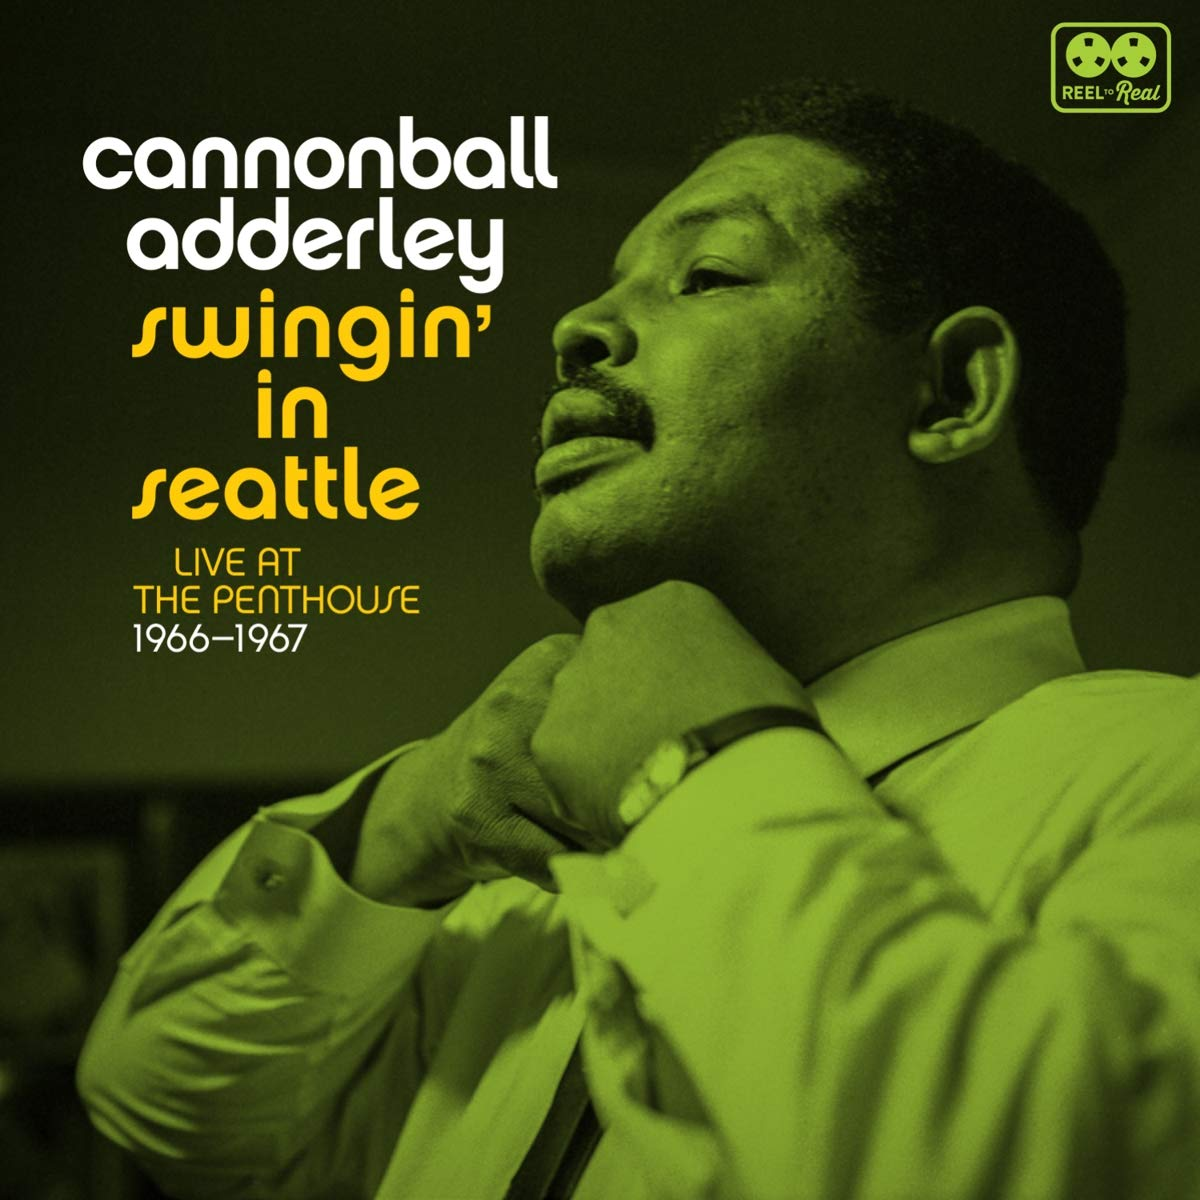 Buy Cannonball Adderley - Swingin' In Seattle, Live at The Penthouse 1966-1967 New or Used via Amazon